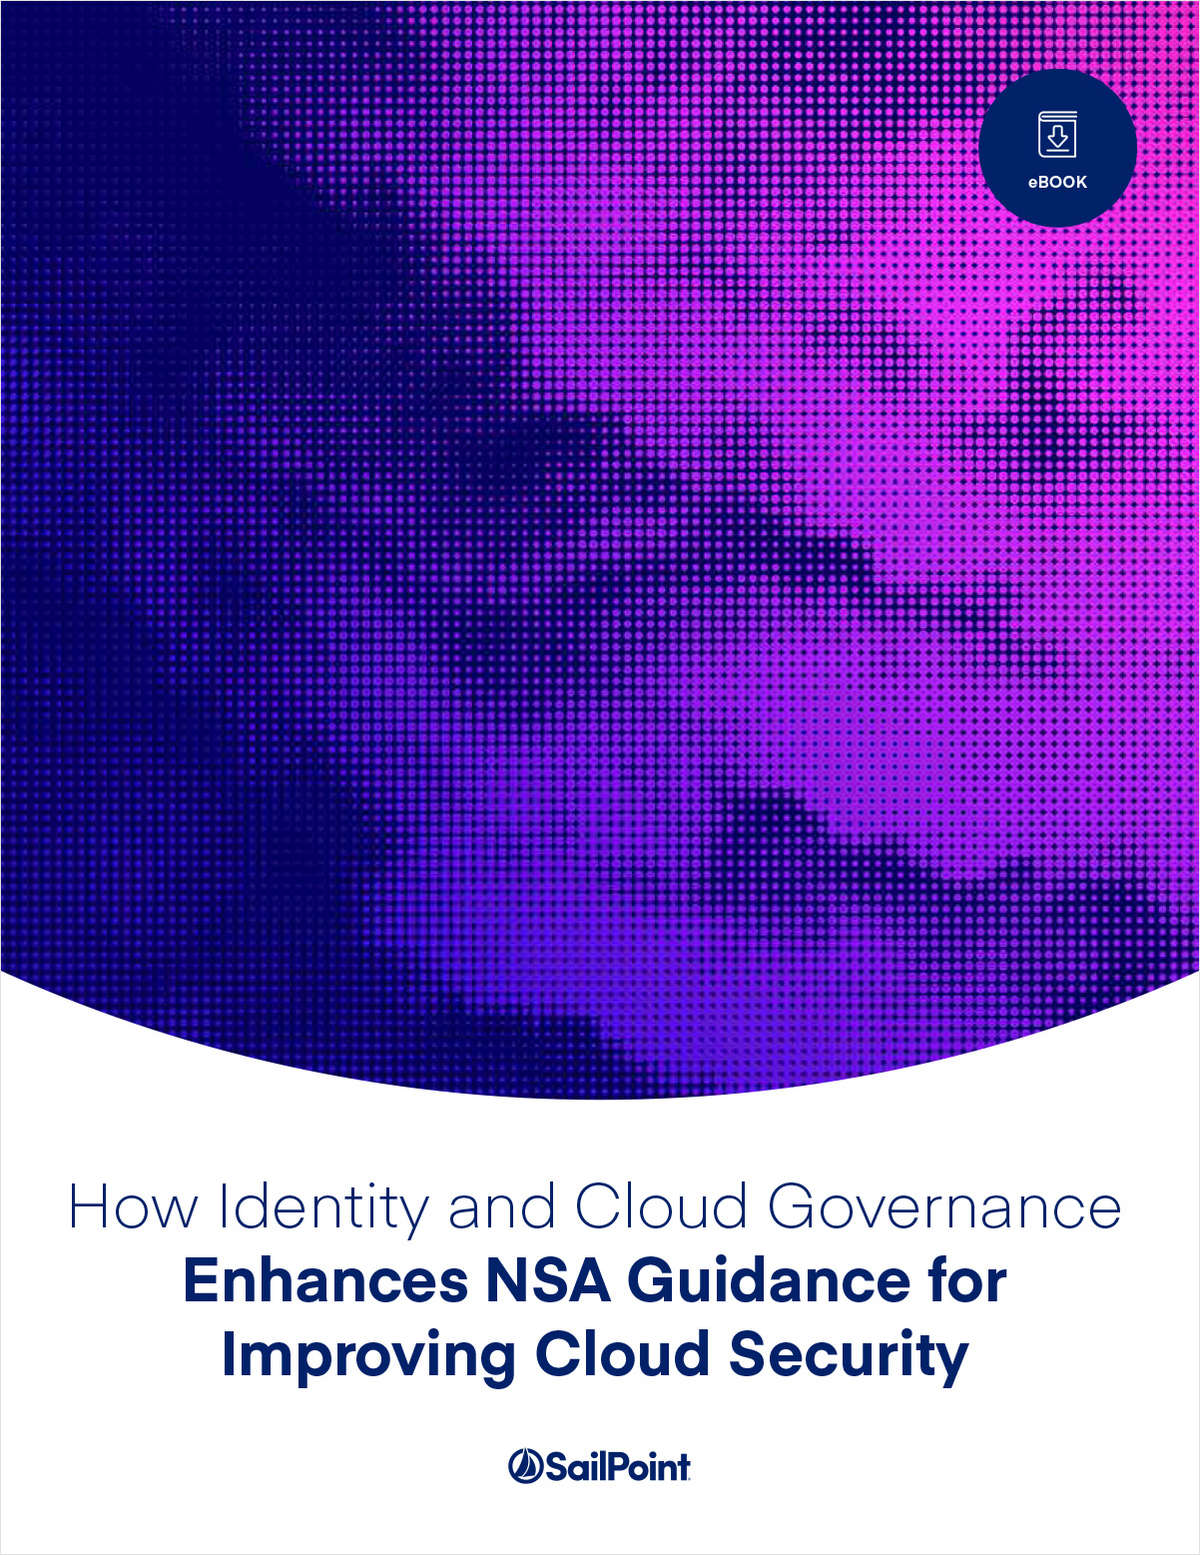 Identity and Cloud Governance Enhances NSA Guidance for Improving Cloud Security